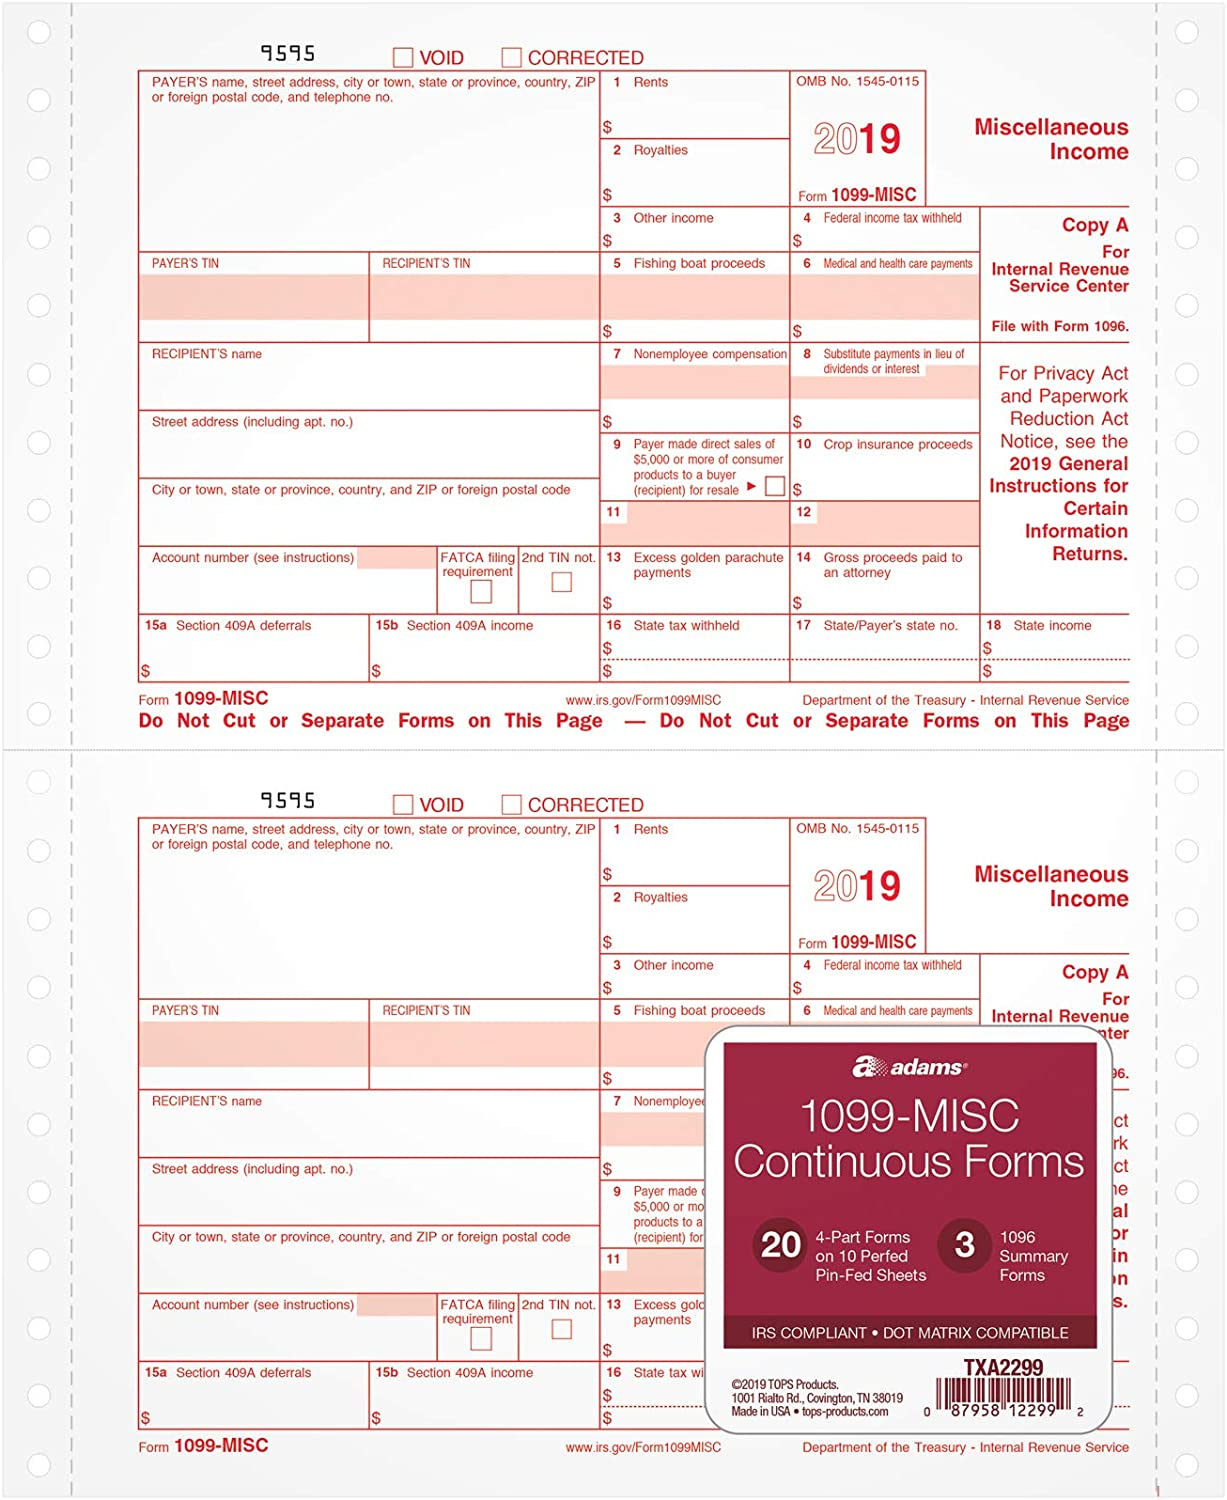 Adams 1099-MISC Continuous Forms for 2019, 20 Carbonless 4-Part Forms, Dot Matrix Compatible, 3 1096 Summary Transmittals (TXA2299), White